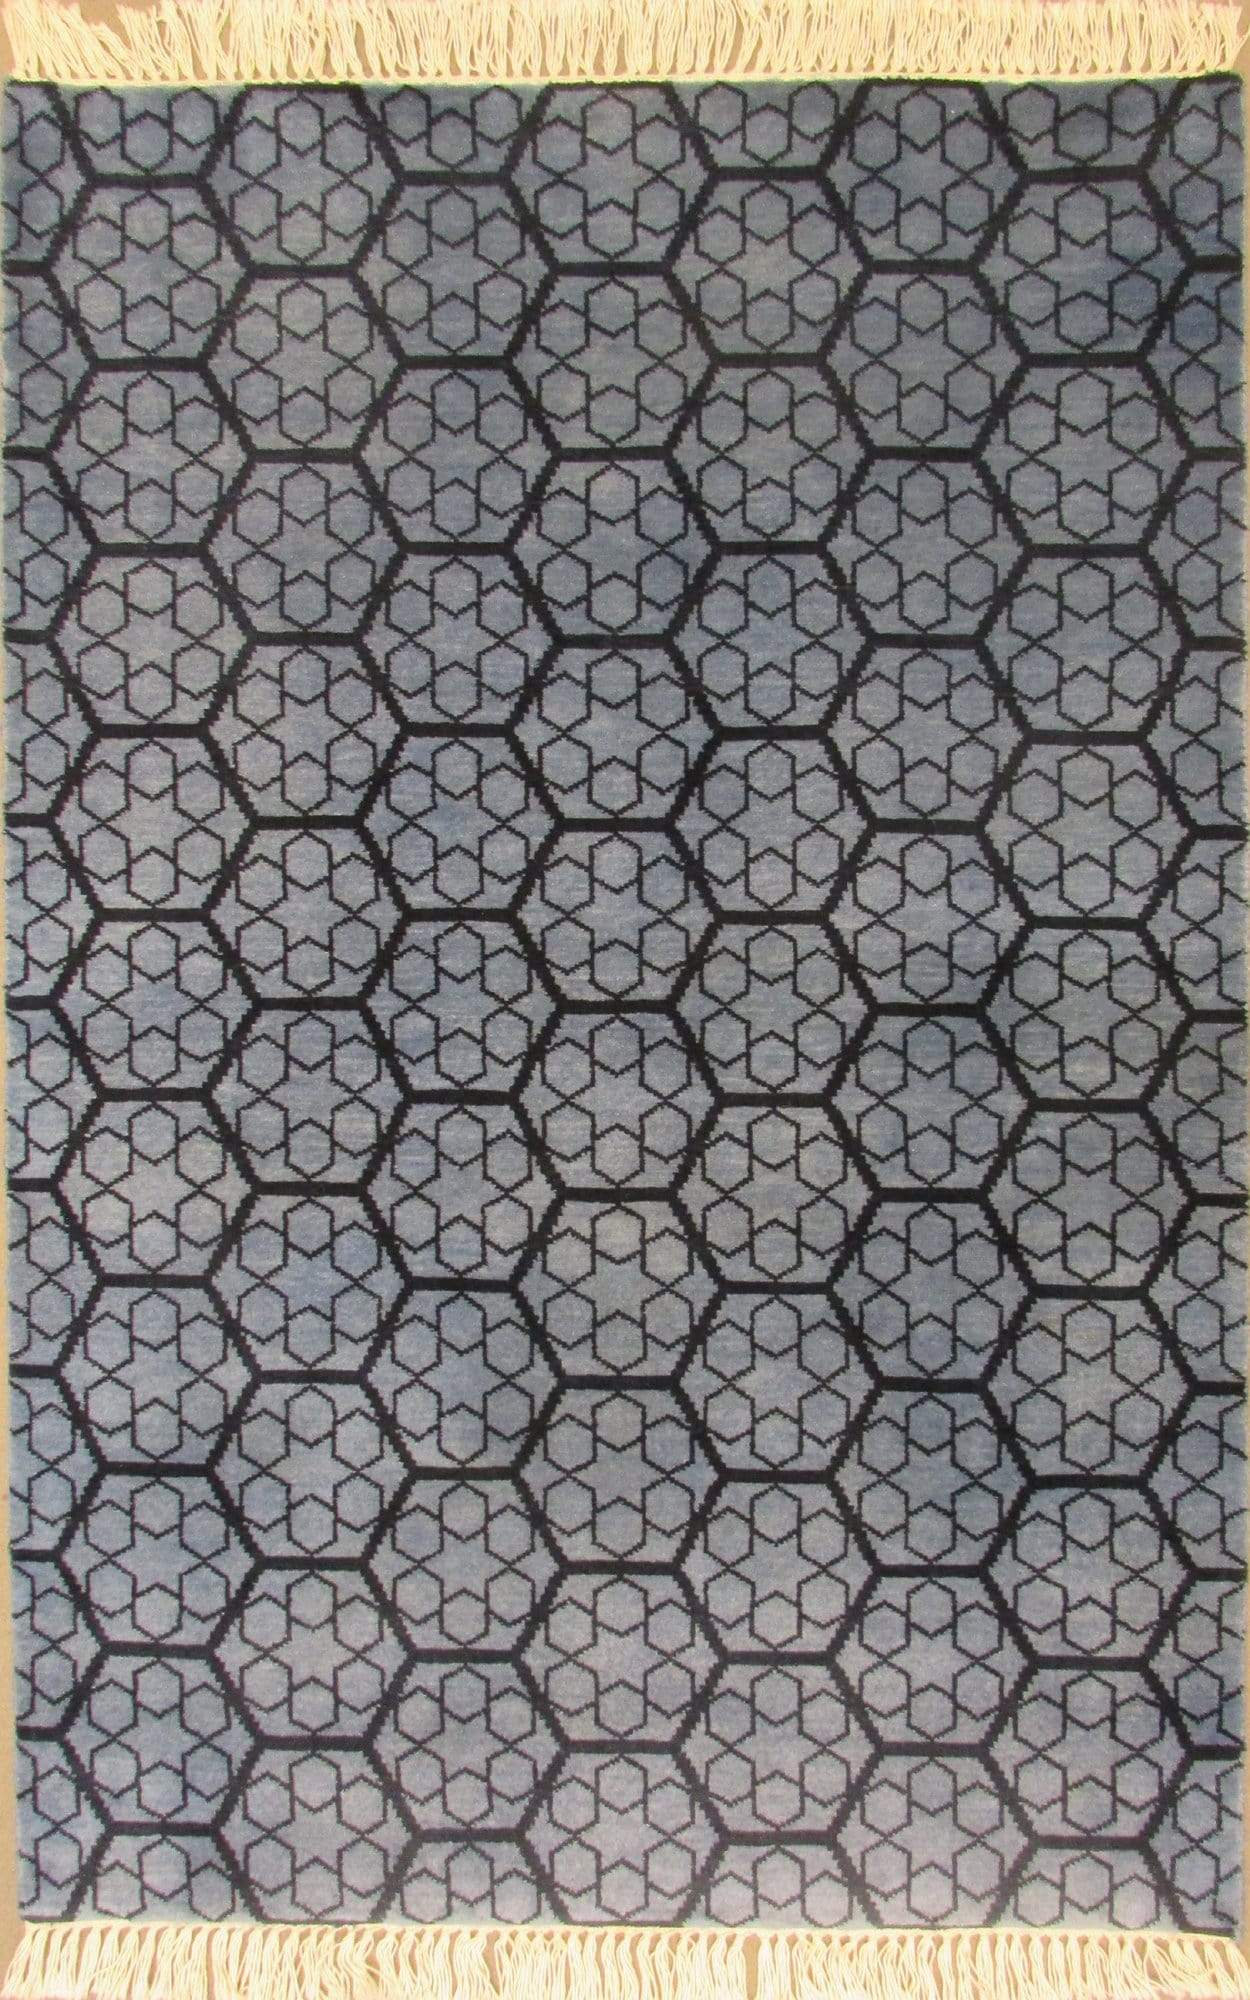 Honeycomb: Modern Rug for Living Room, Bedroom, Dining Room, and Office (Blue)